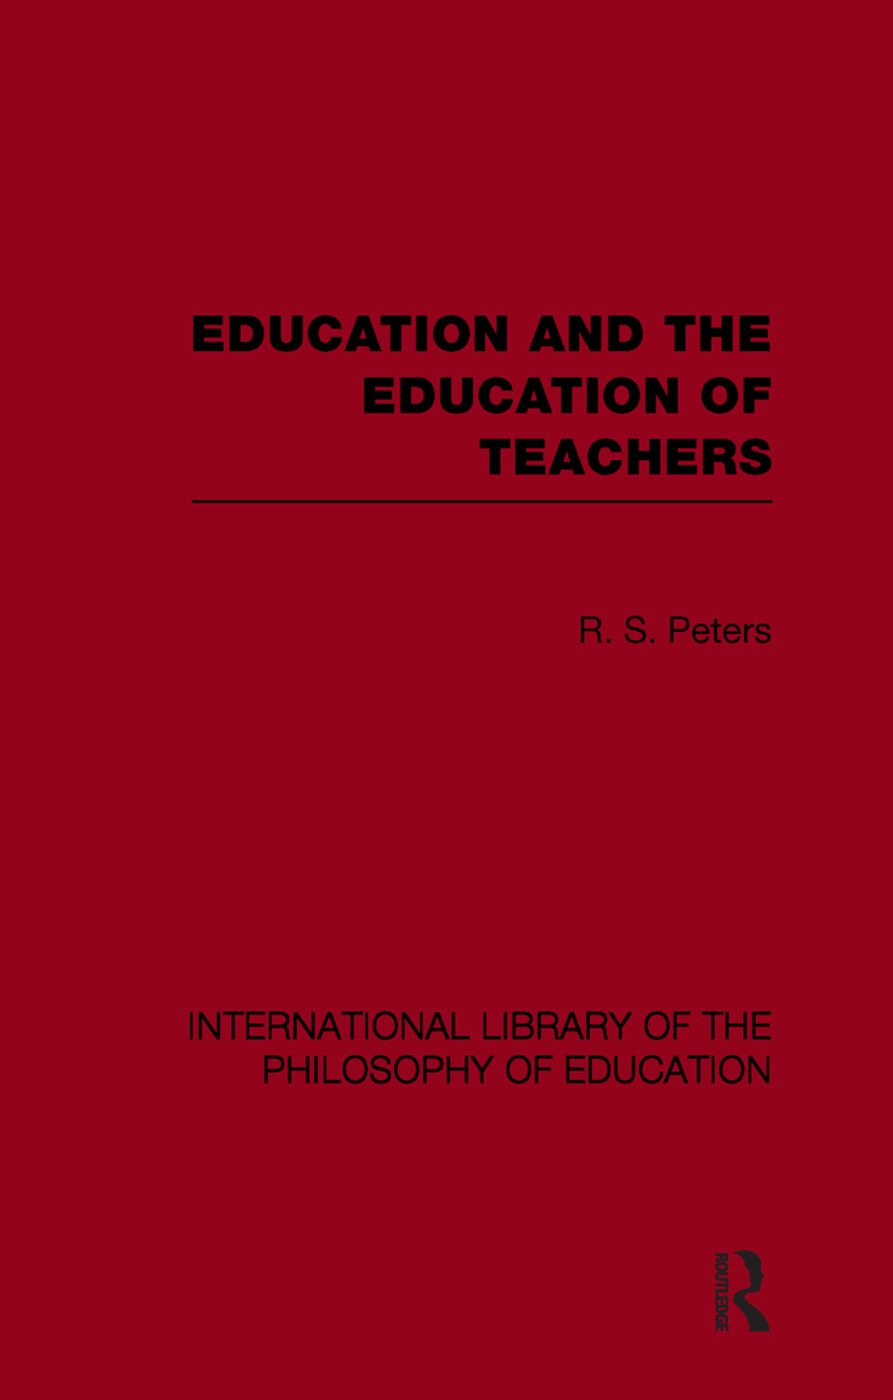 Education and the Education of Teachers (International Library of the Philosophy of Education volume 18) (Paperback) book cover